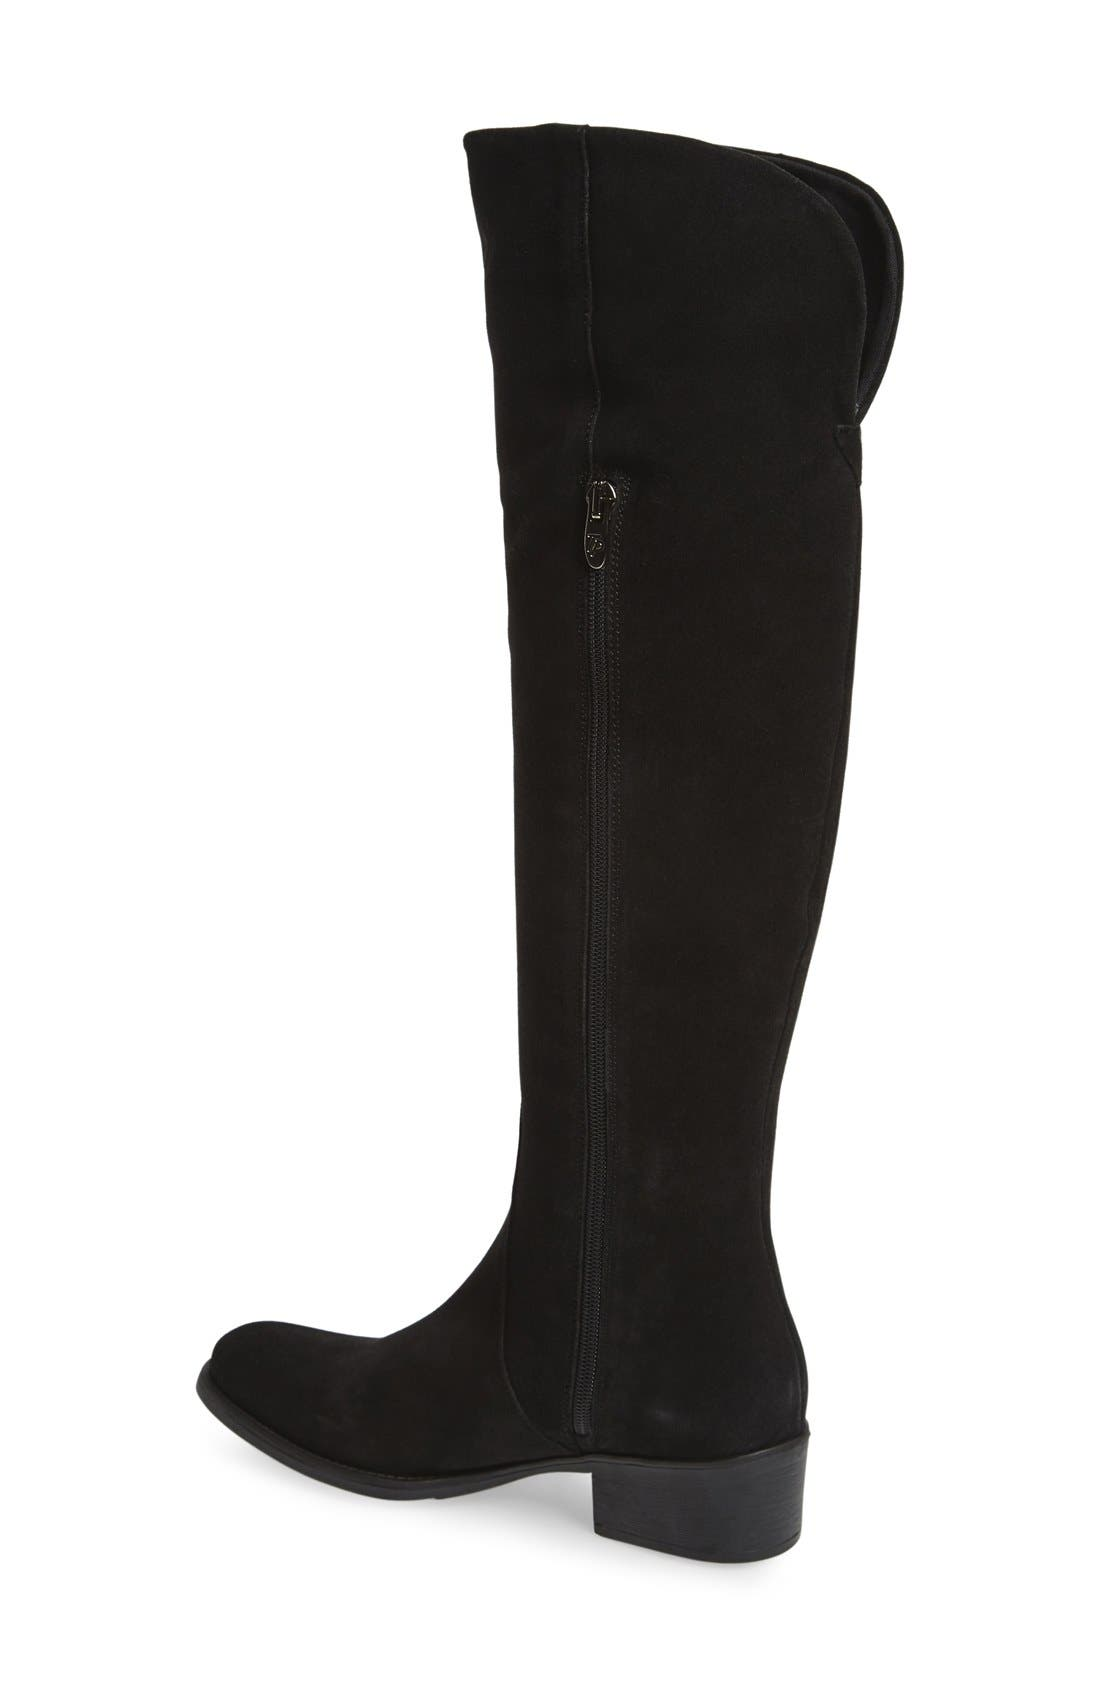 9bbbabed721 Women's Over-The-Knee Boots | Nordstrom